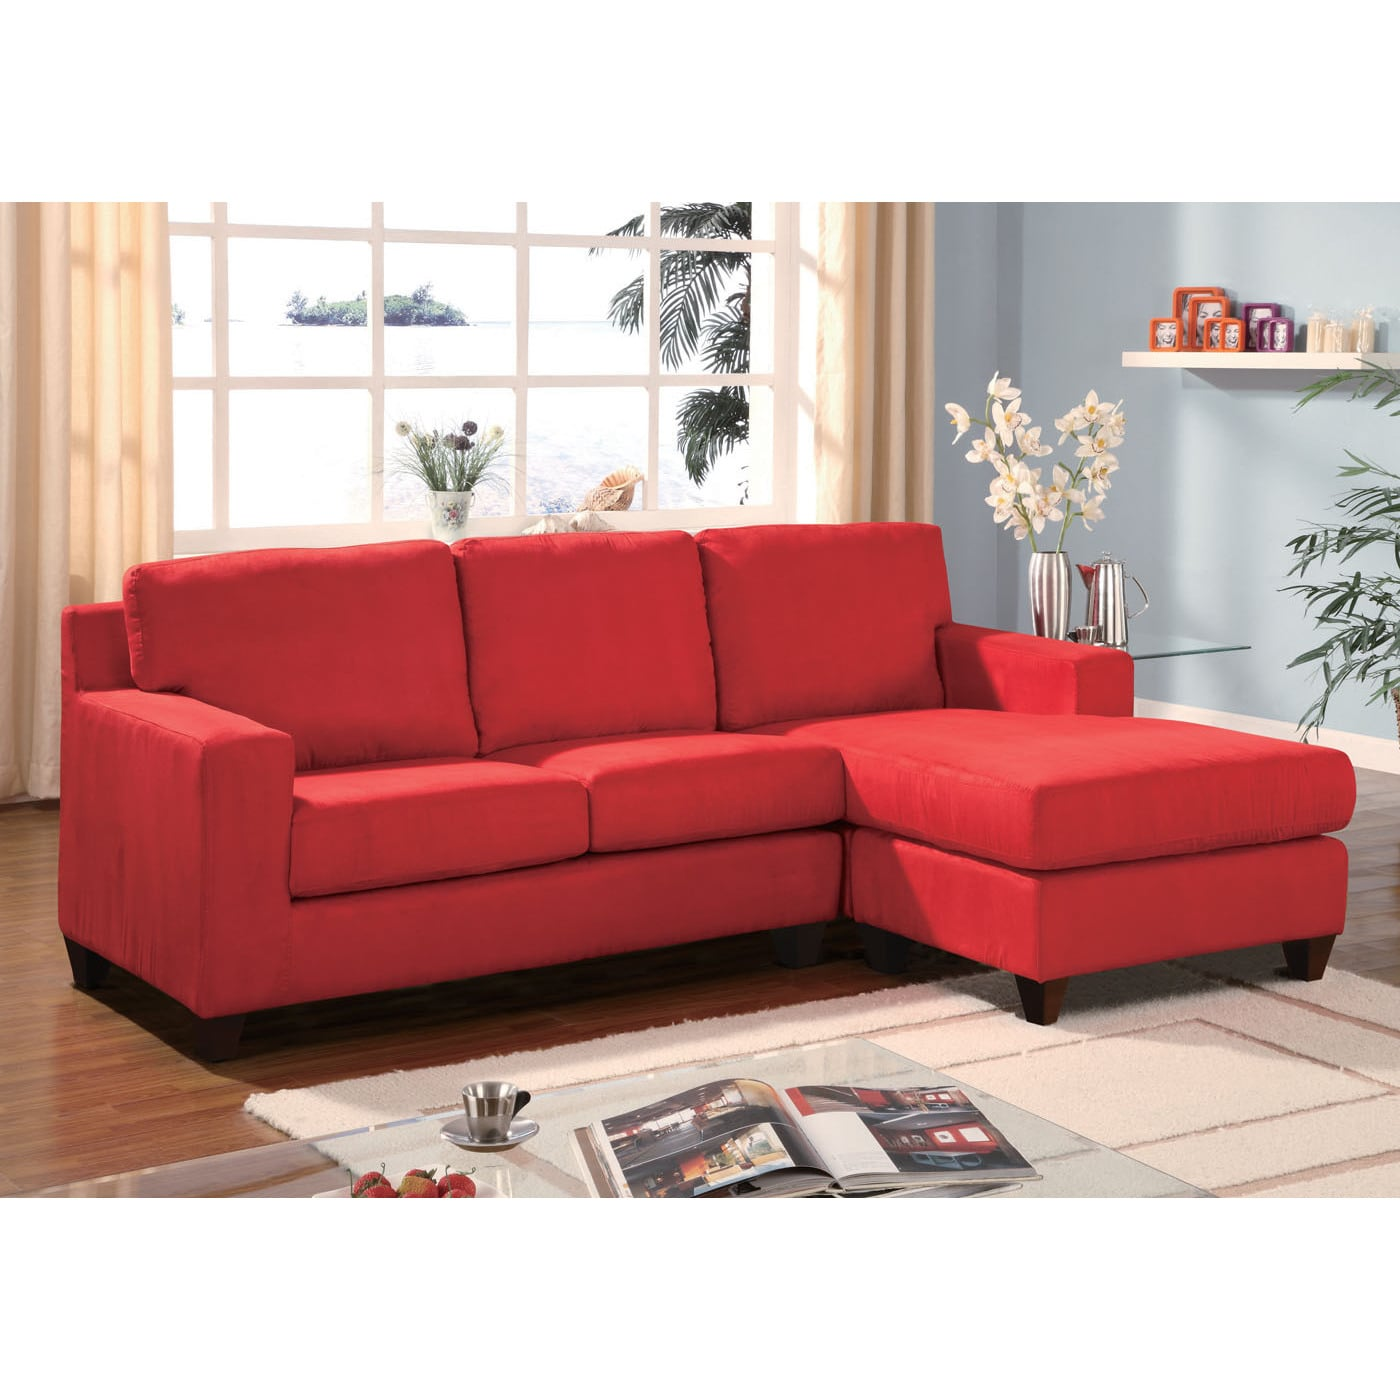 Acme Furniture Vogue Microfiber Sectional Sofa